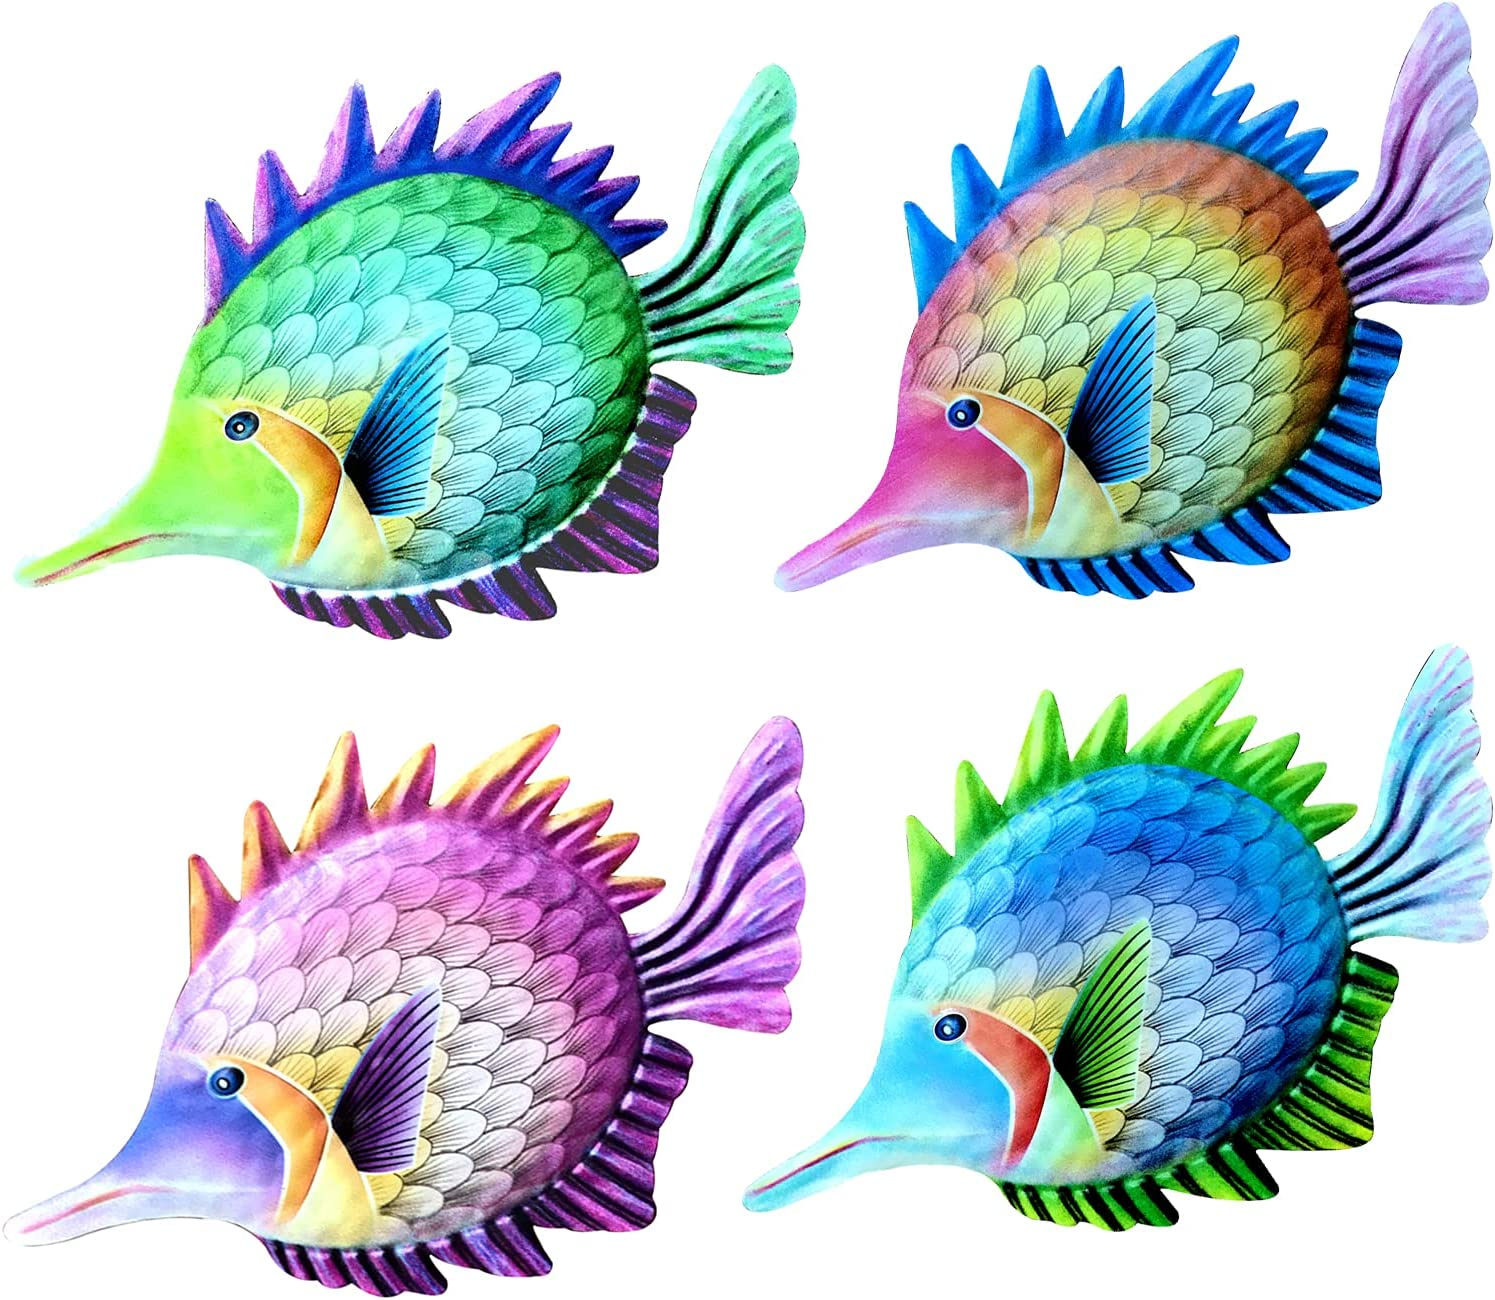 Metal Fish Wall Decor, Set of 4 Metal Fish Outdoor Wall Art Sea Life Art Metal Wall Sculpture Hanging Decor for Pool,Colorful Cute Metal Fish Statues for Porch Fence Garden Decor, Bedroom, Living Room